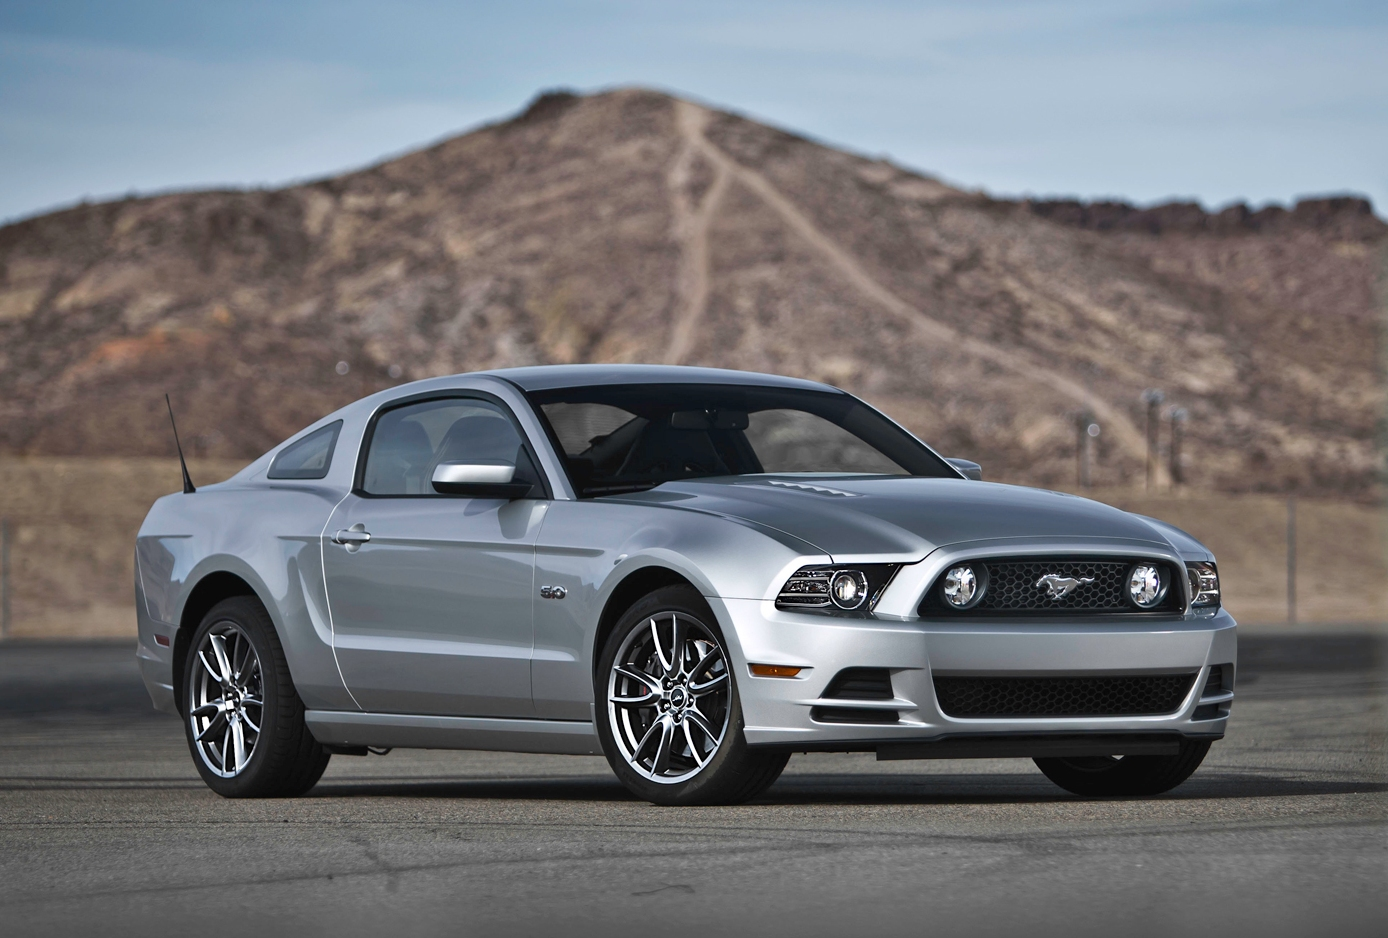 chevy camaro vs ford mustang reliability. Black Bedroom Furniture Sets. Home Design Ideas